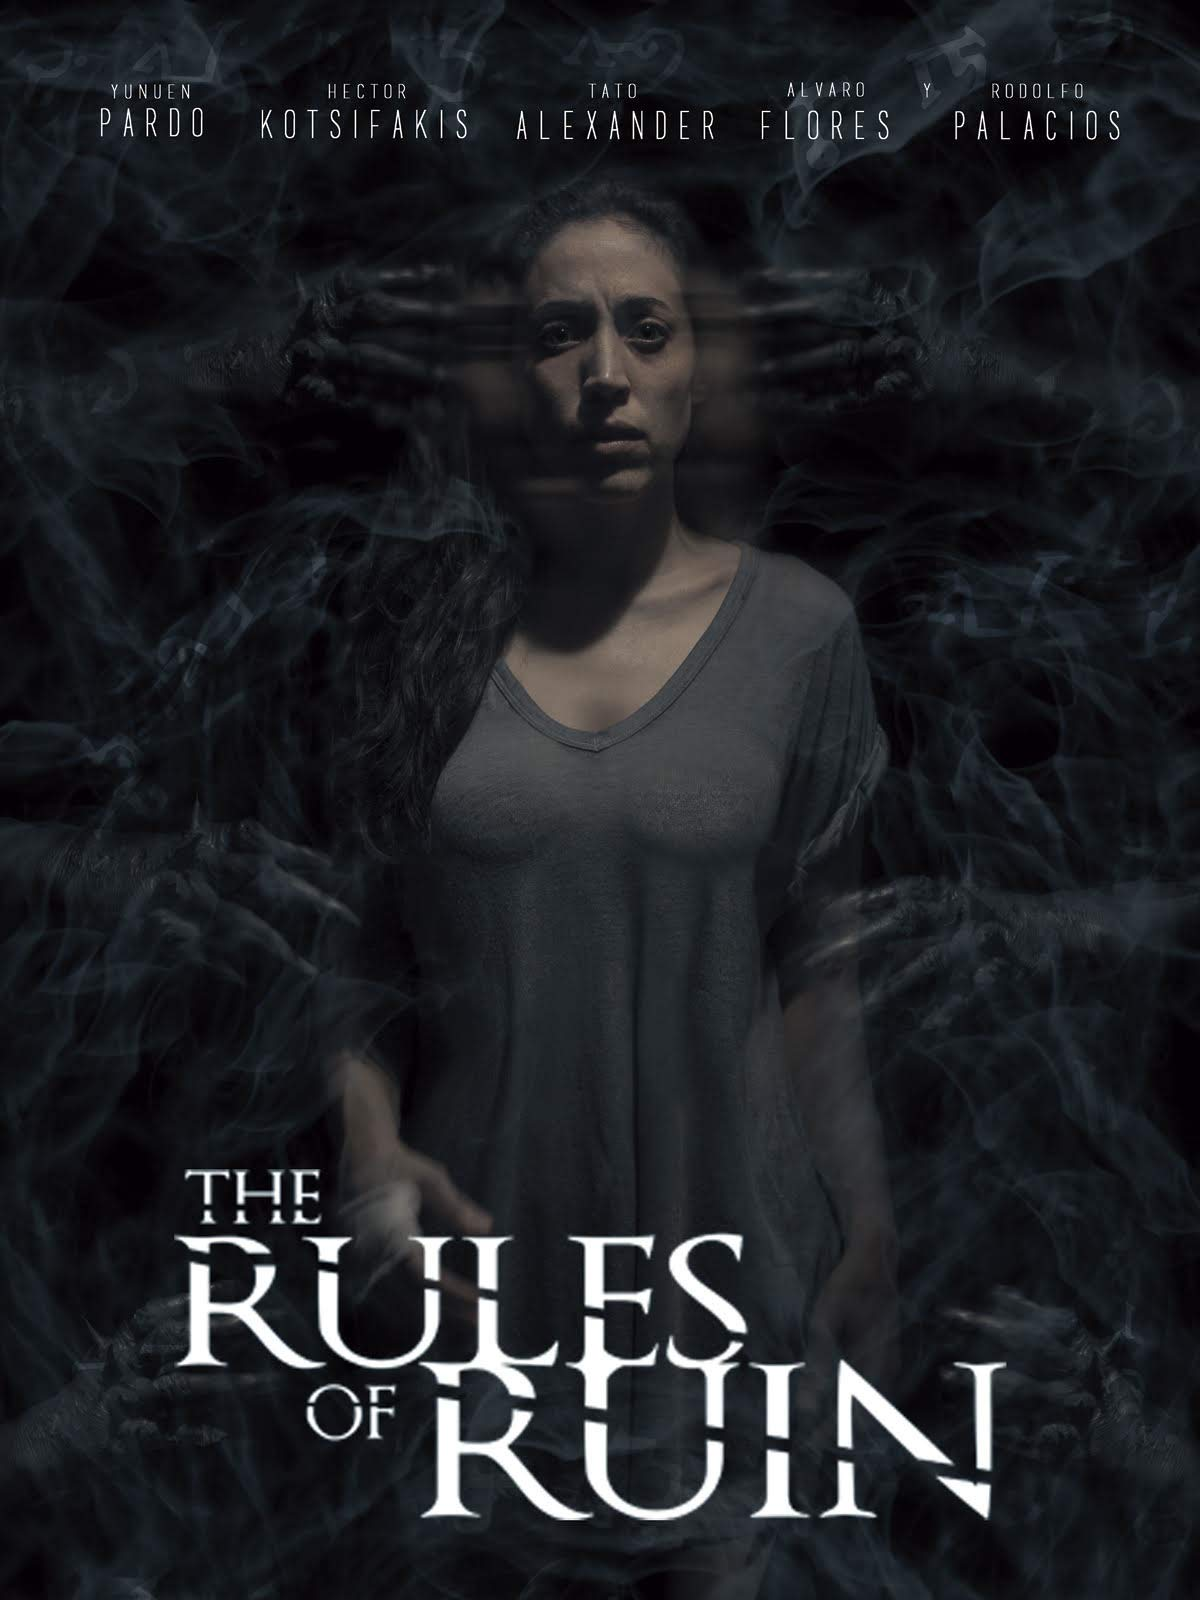 The Rules of Ruin